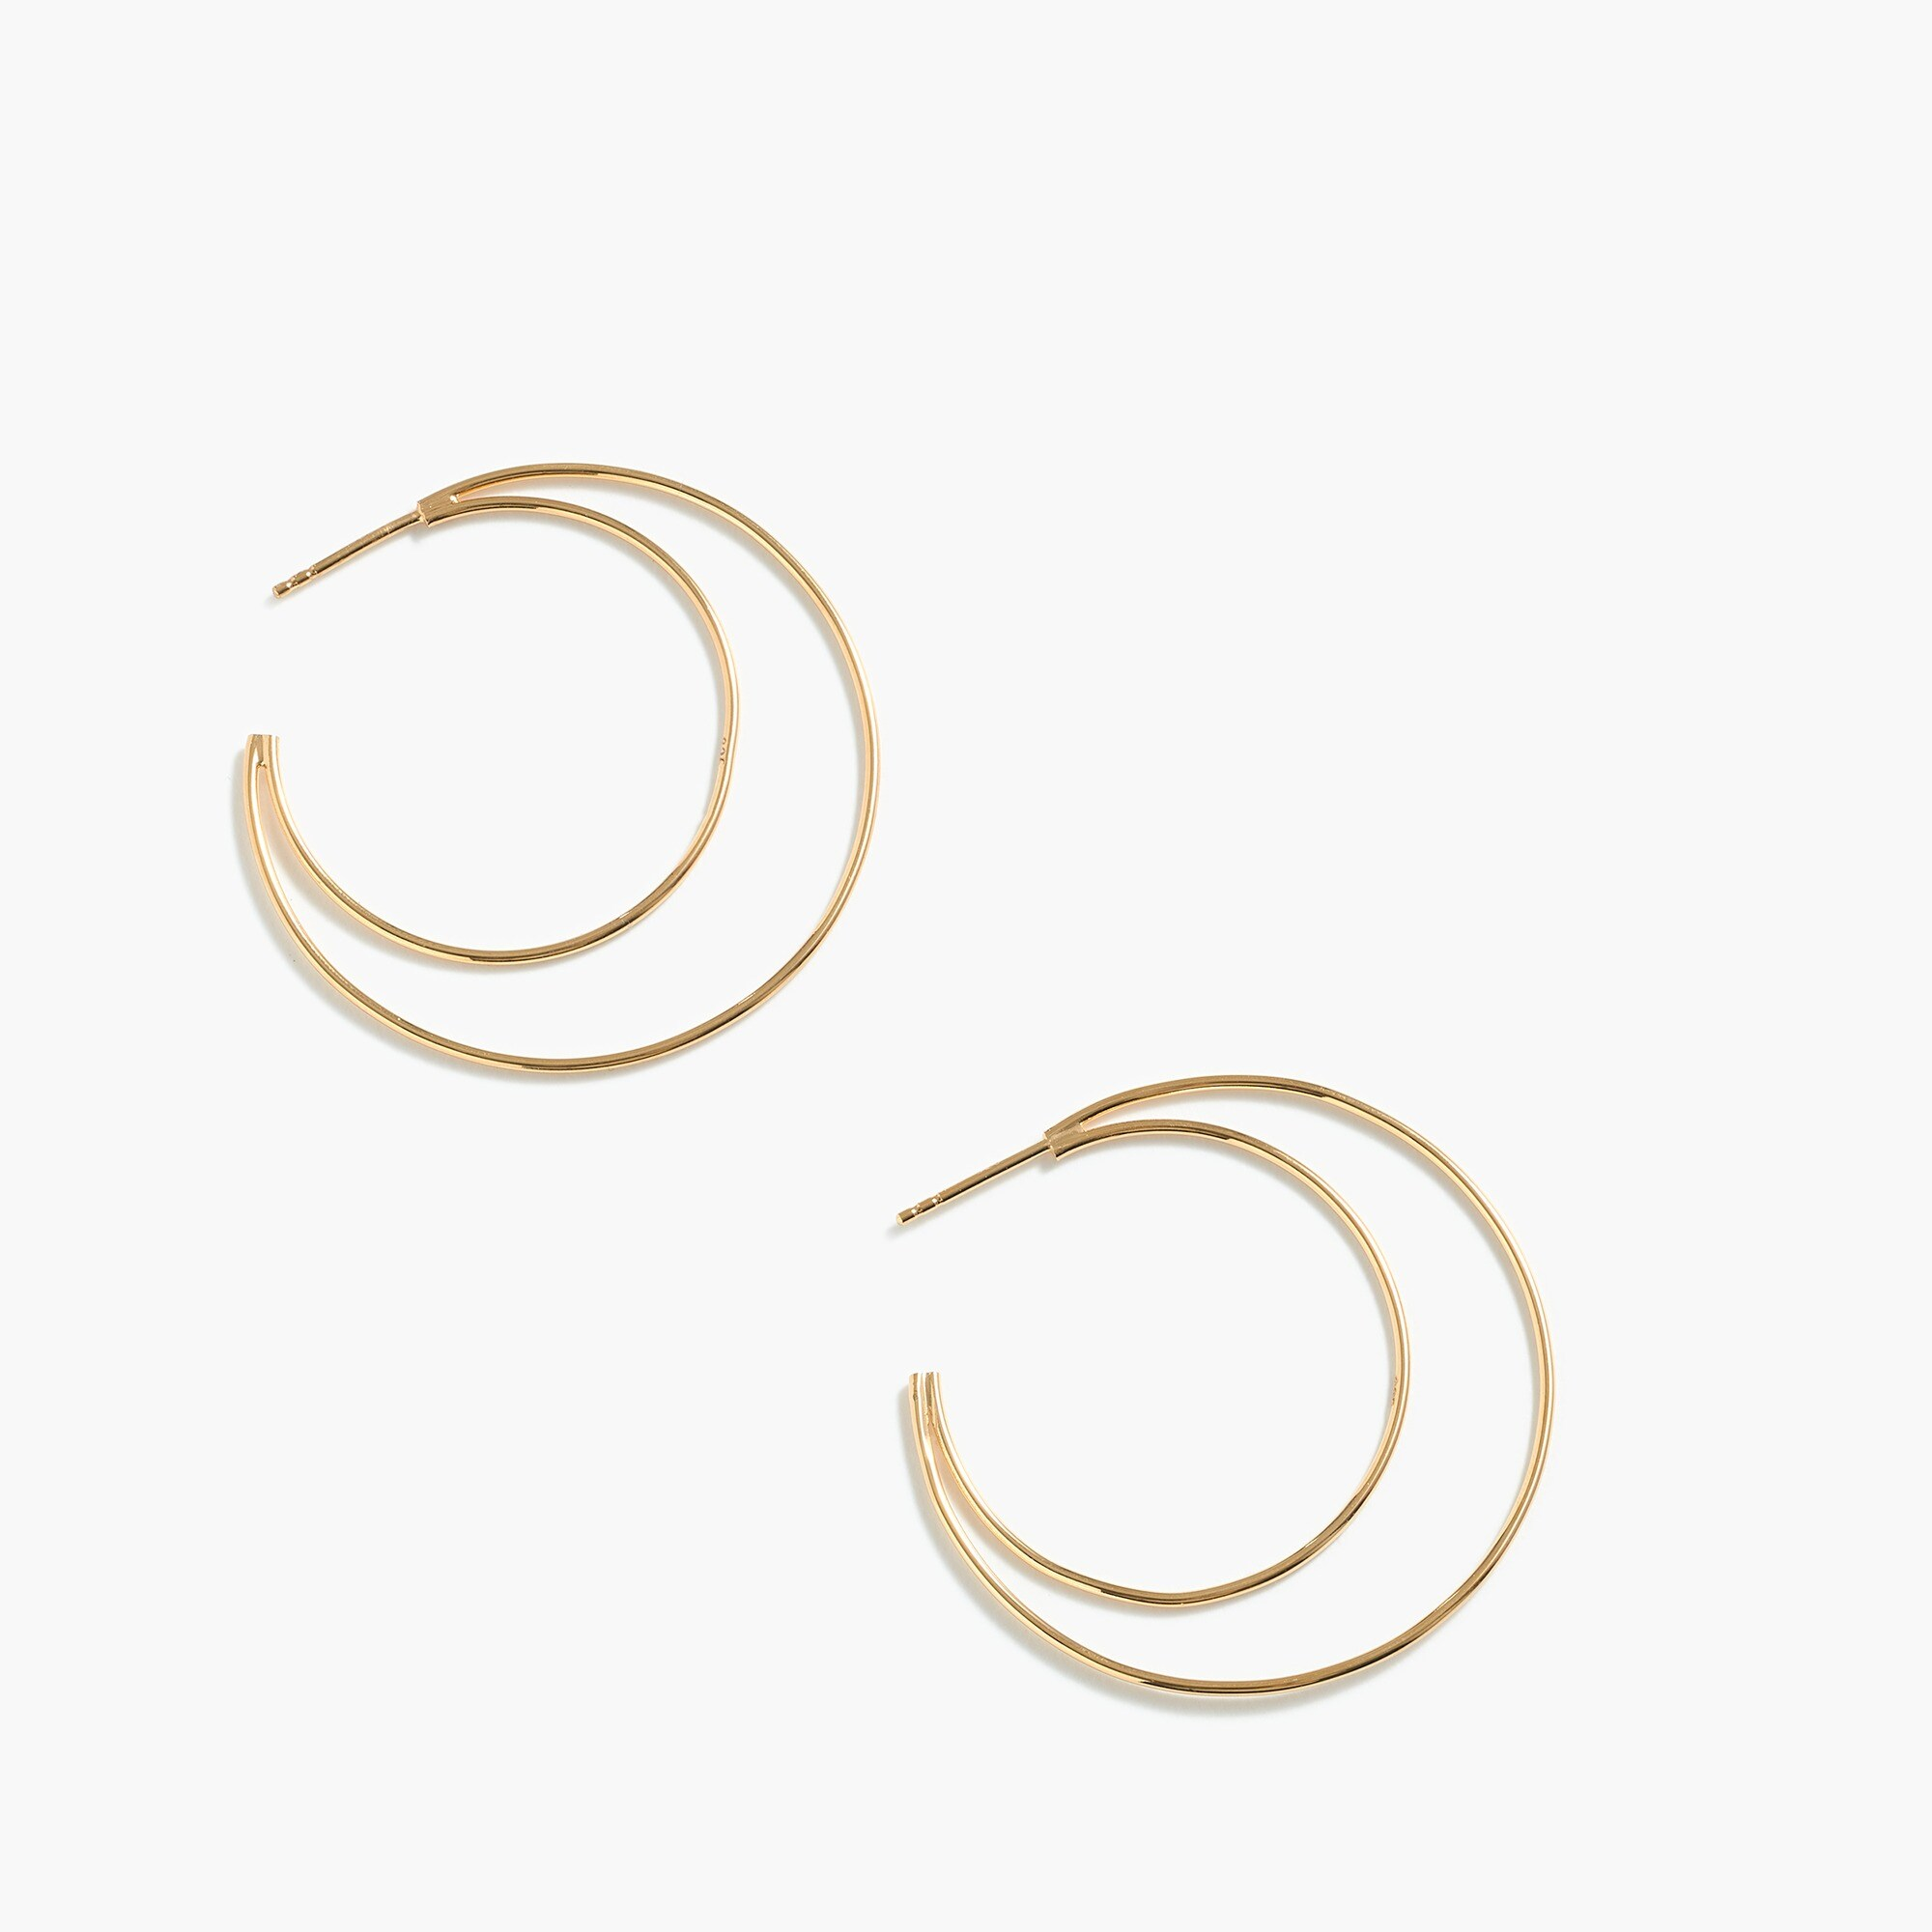 womens Demi-fine 14k gold-plated double hoop earrings